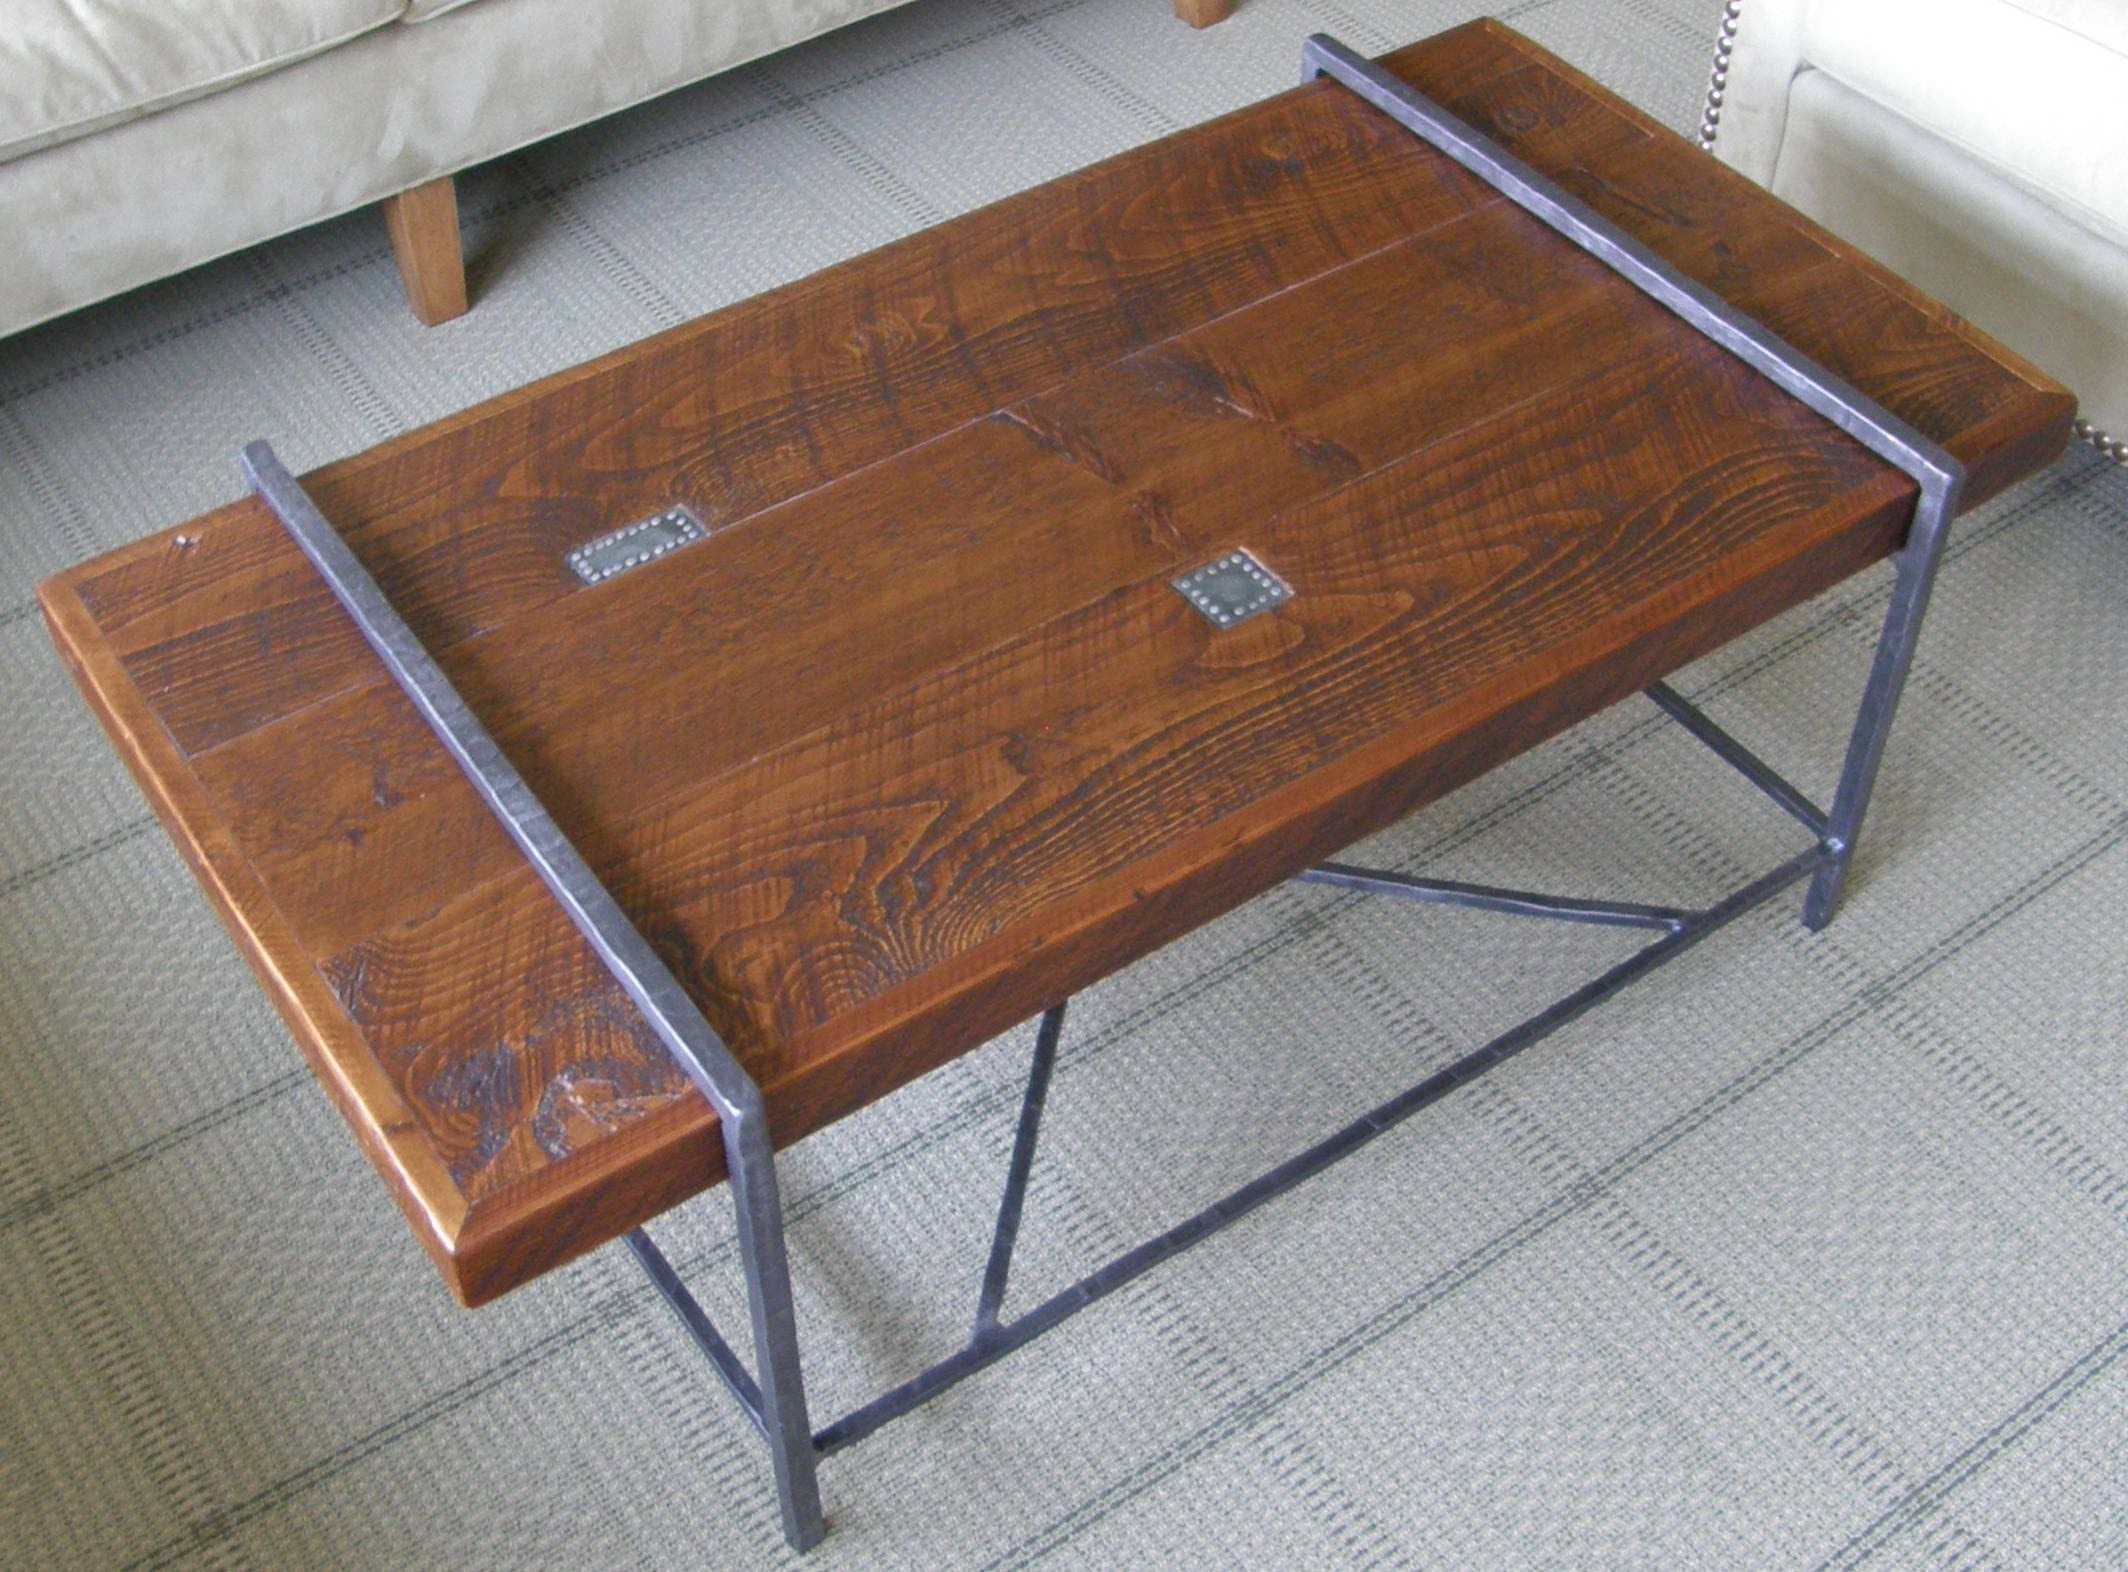 Reclaimed Wood Coffee Table Top Similar build for counter top